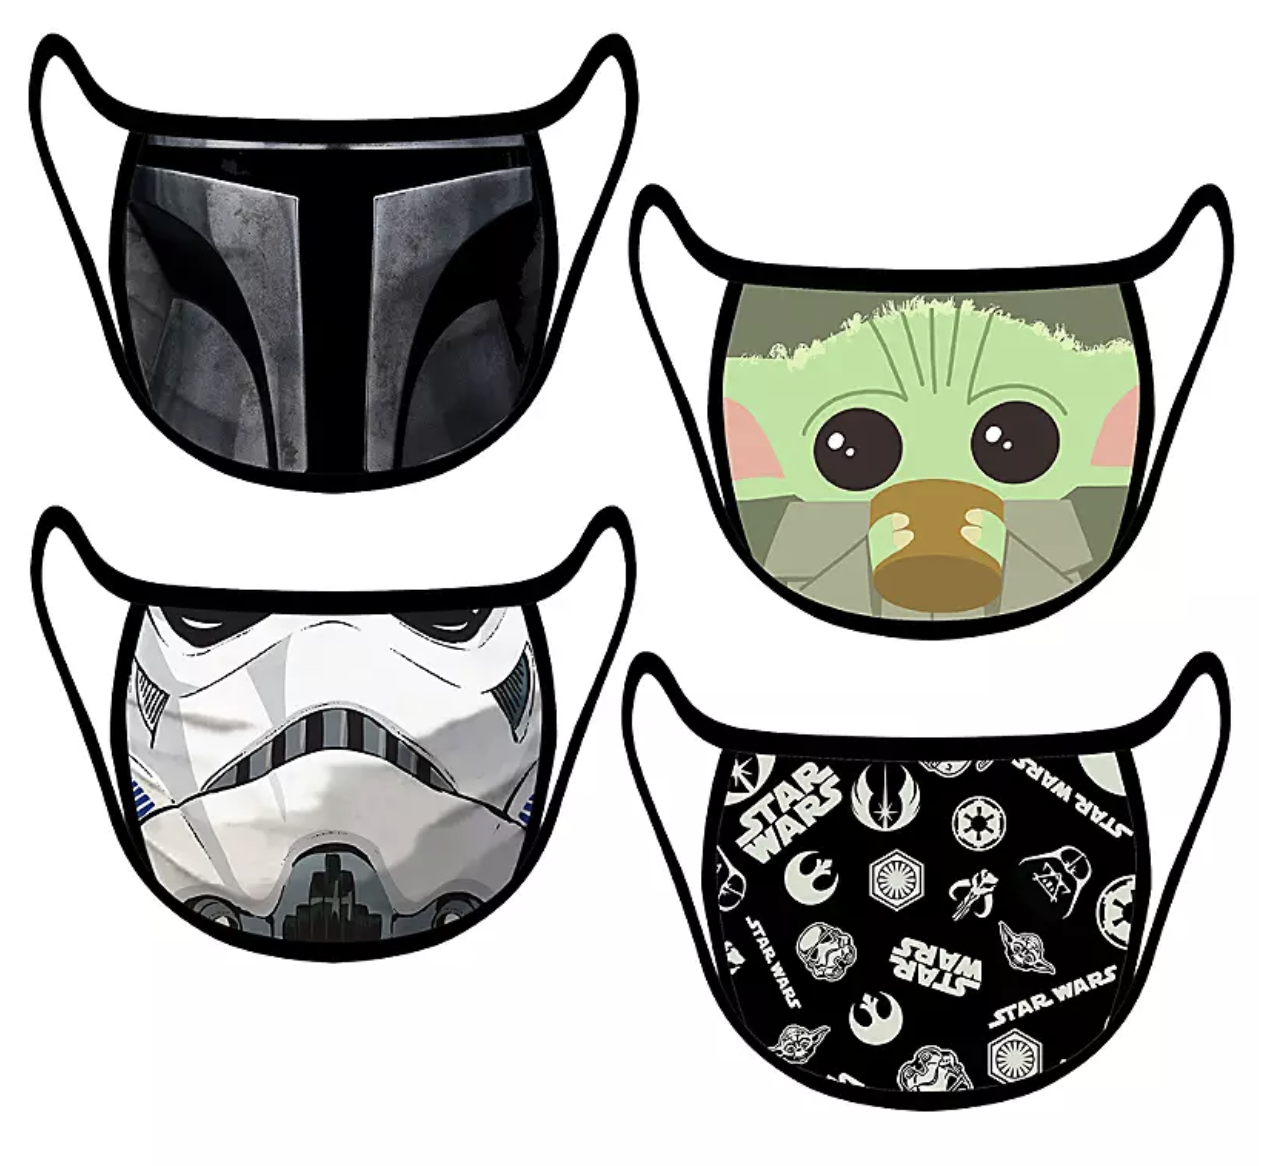 A set of Star Wars masks with Baby Yoda, a stormtrooper, the mandalorian, and a Star Wars logo print